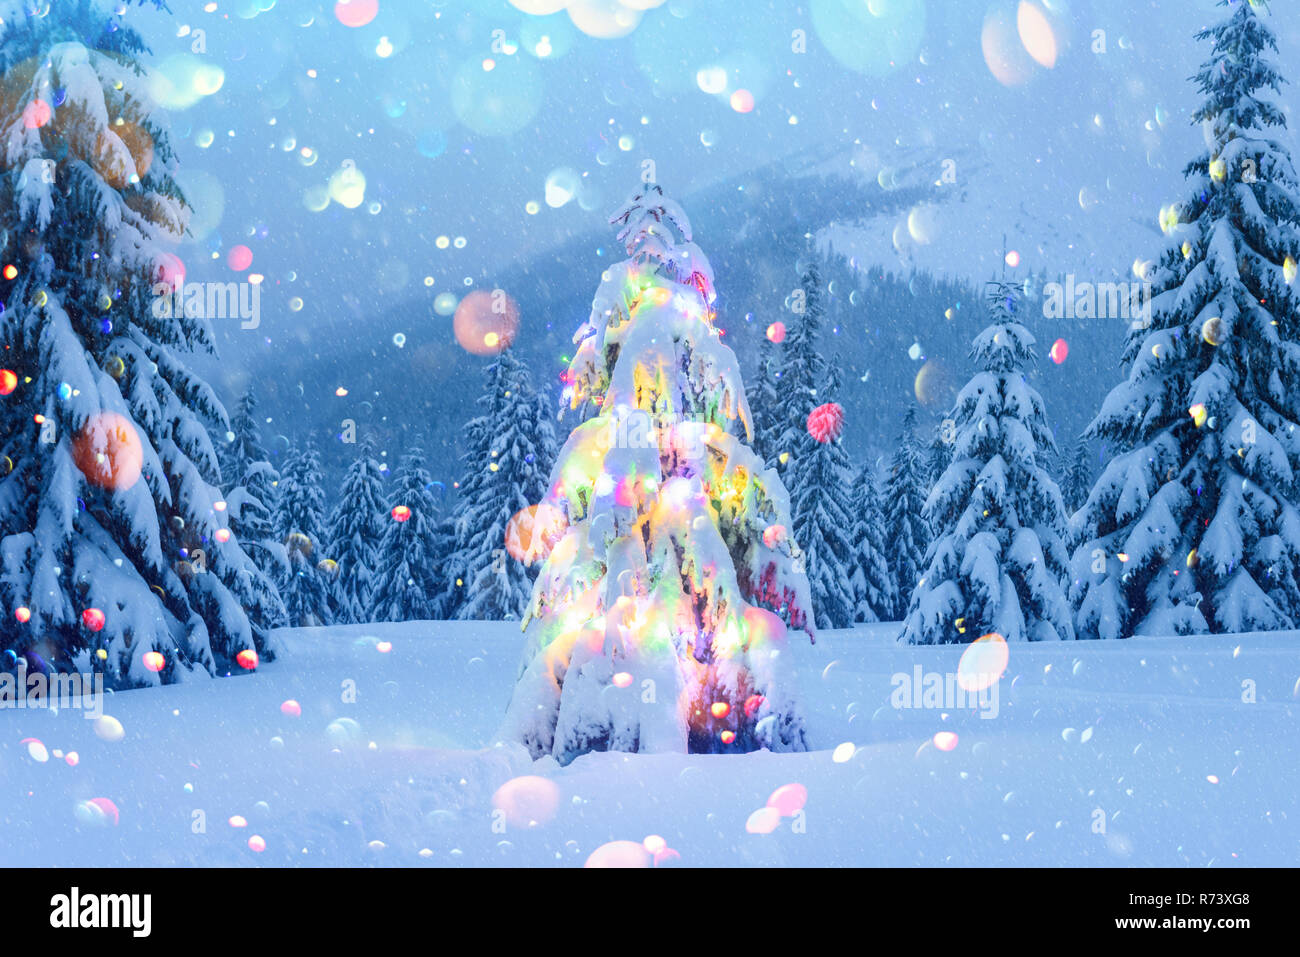 Mountain Christmas Tree.Holiday Landscape With Christmas Tree Snow And Lights In